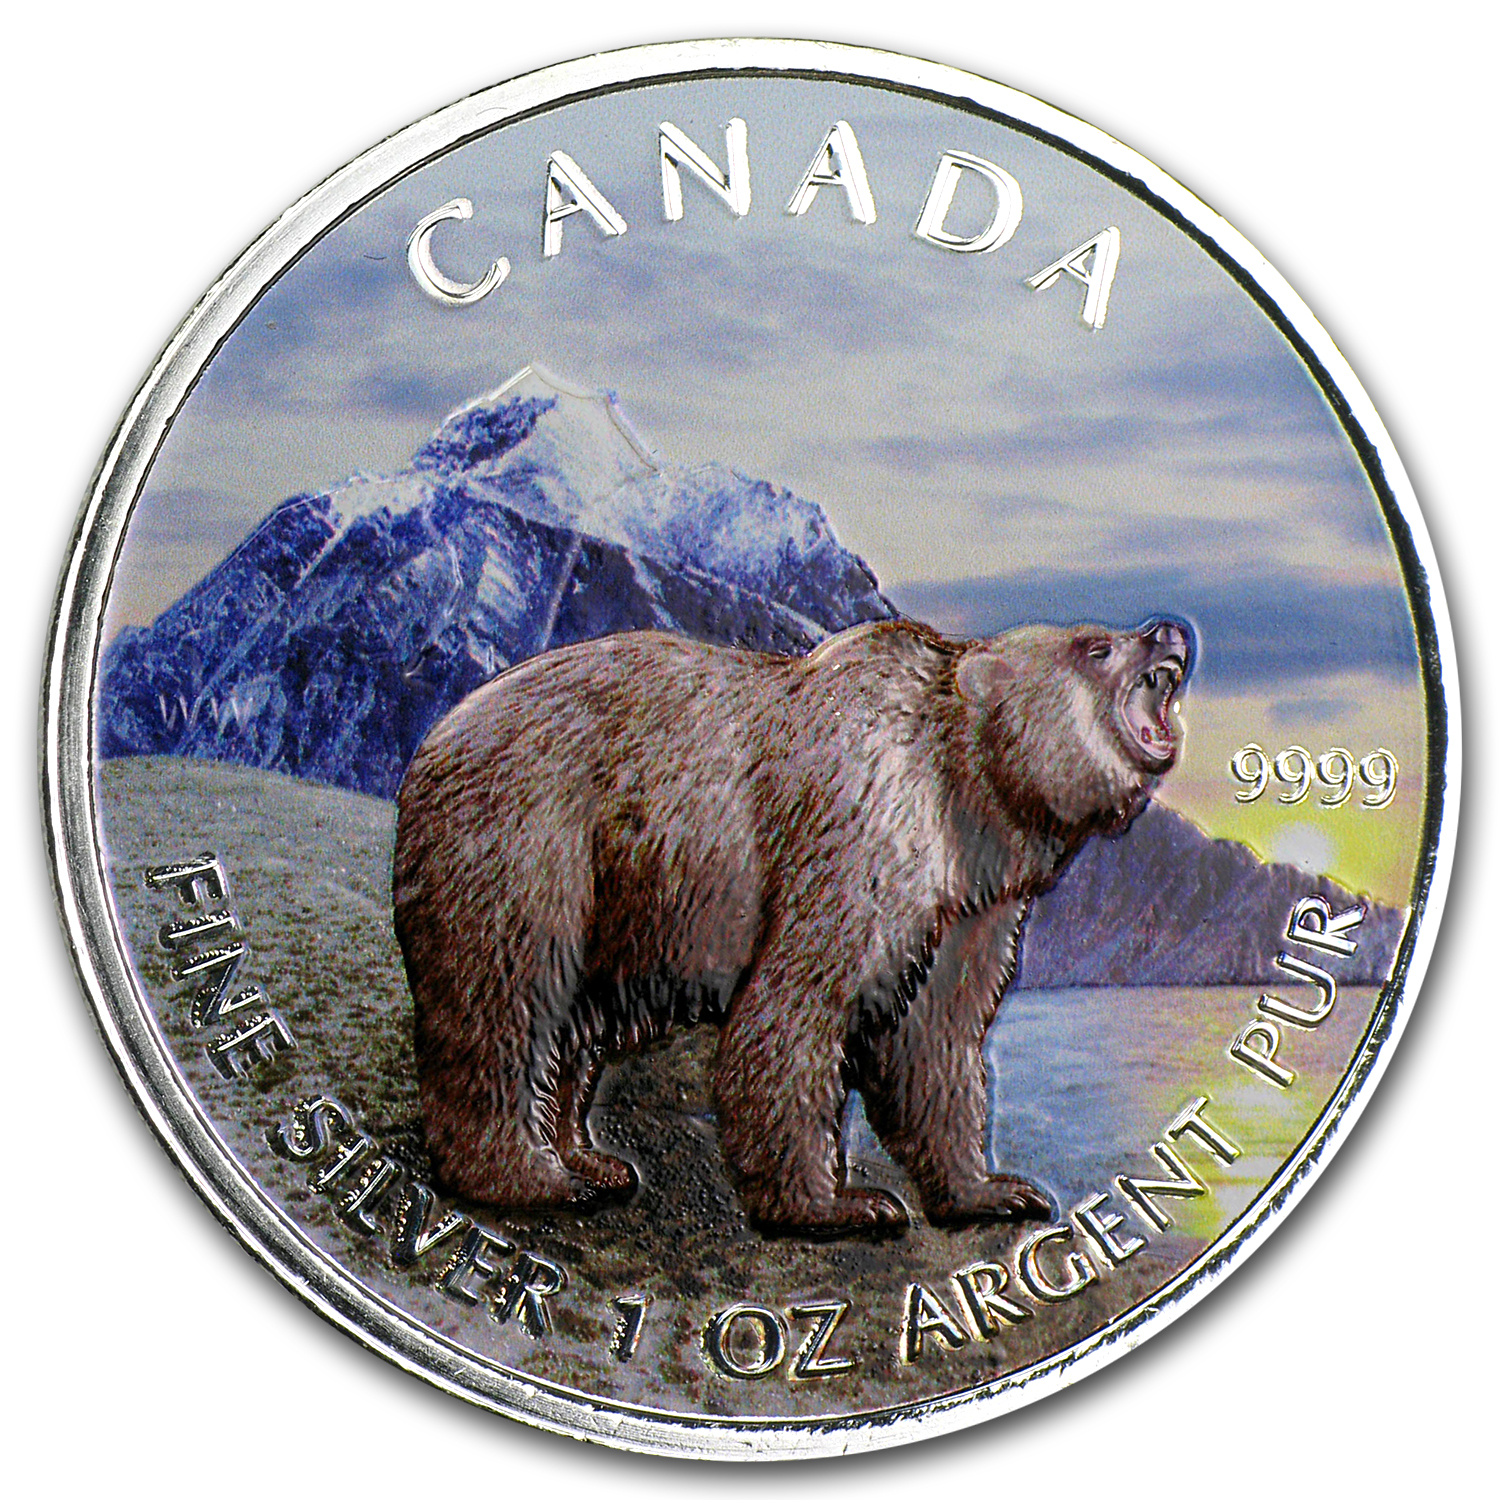 2011 1 oz Silver Canadian Wildlife Series Grizzly (Full Colour)